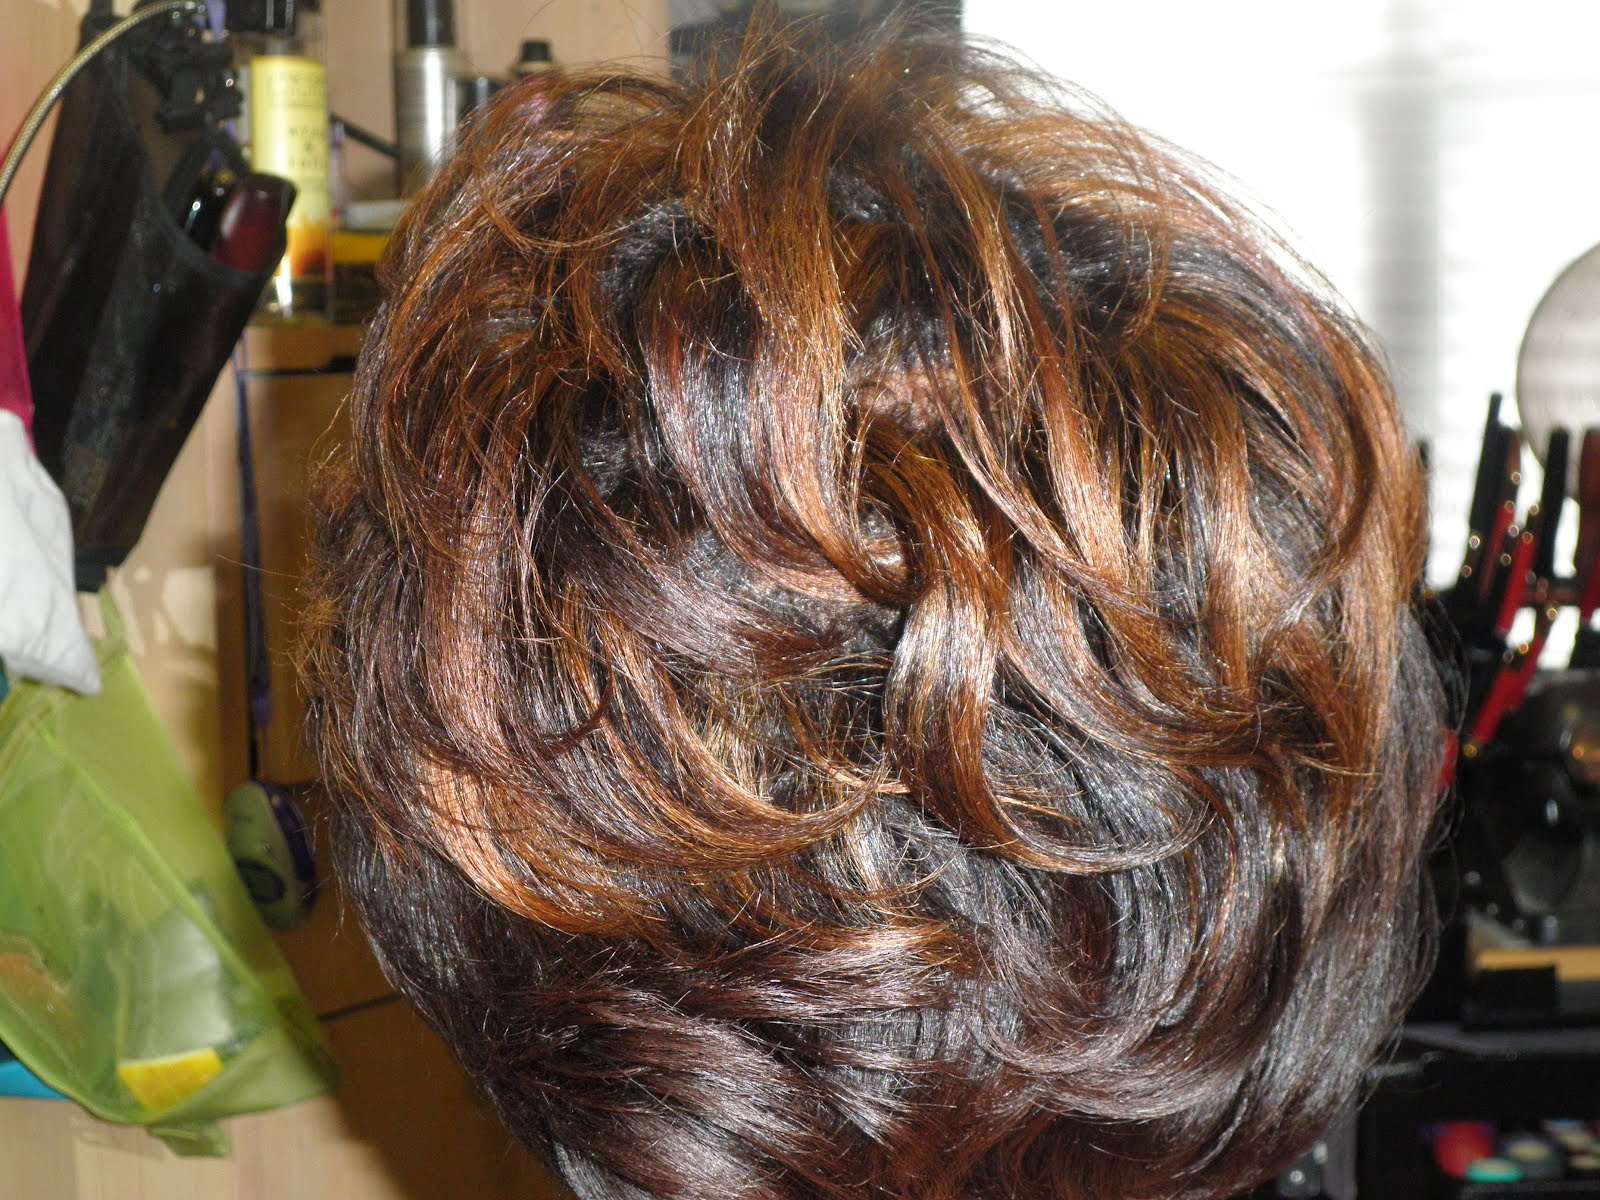 Phenomenalhaircare color service golden brown color highlights saturday march 3 2012 nvjuhfo Choice Image